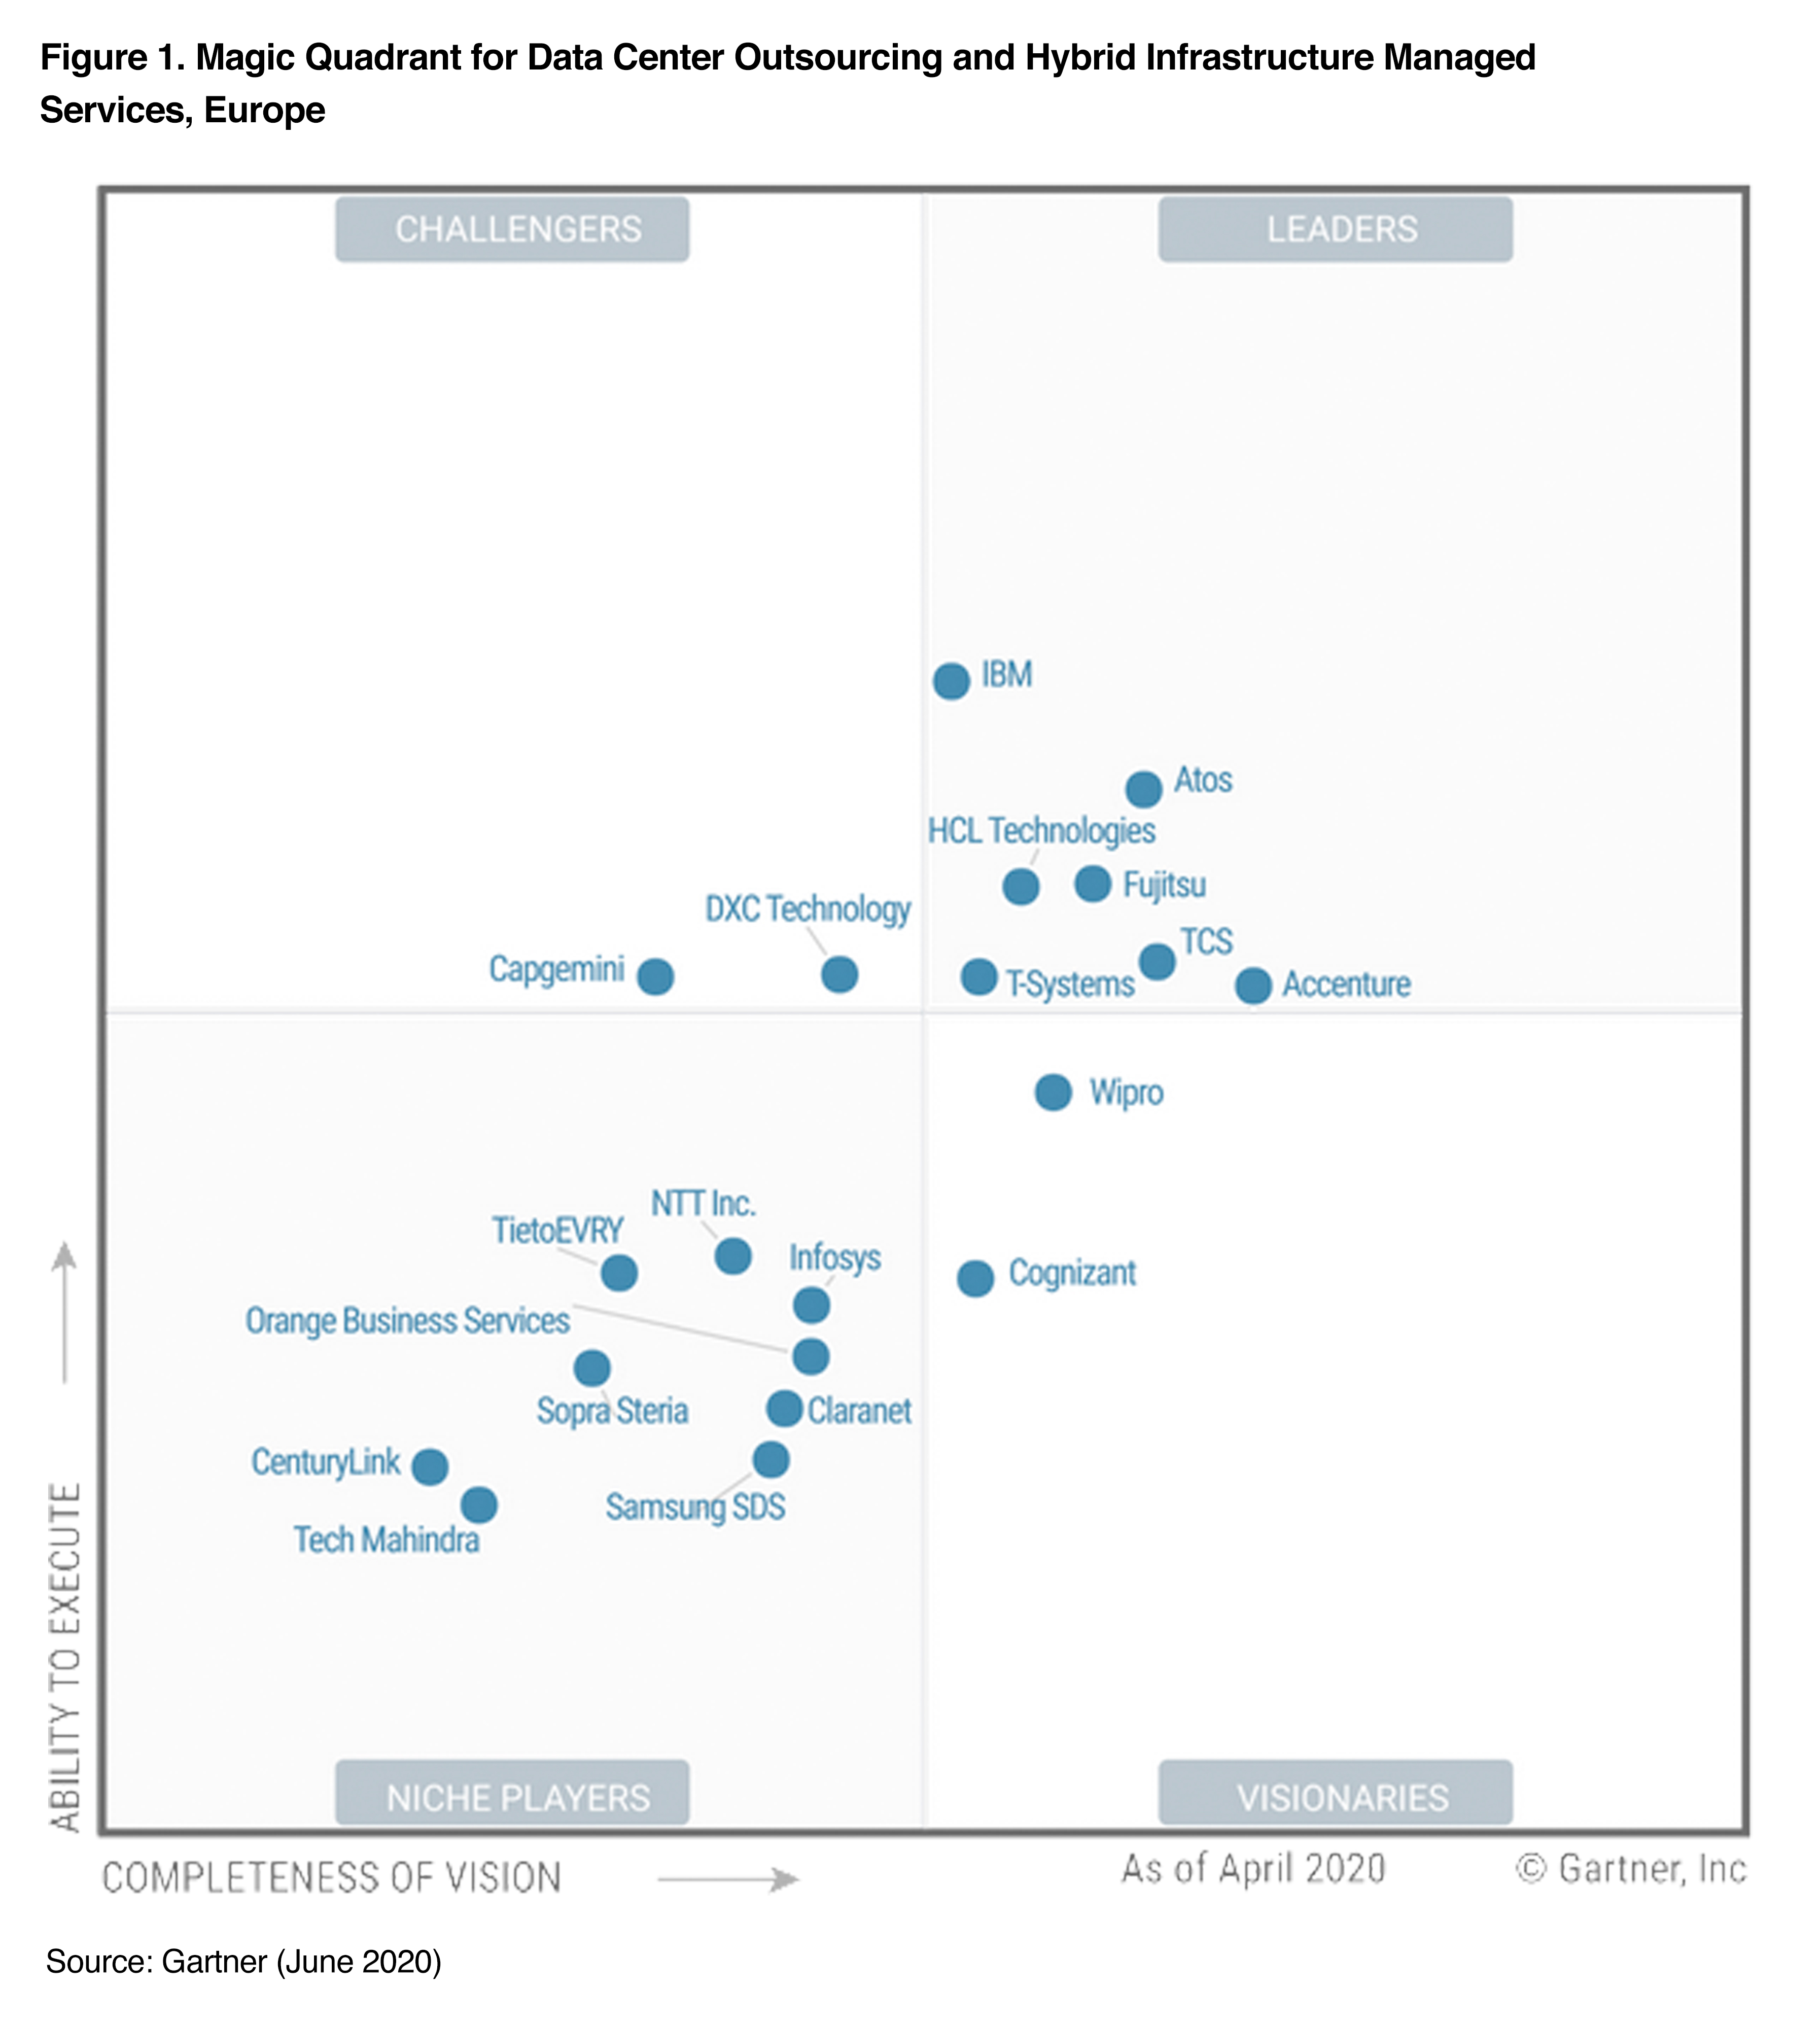 Magic Quadrant for Data Center Outsourcing and Hybrid Infrastructure Managed Services, Europe